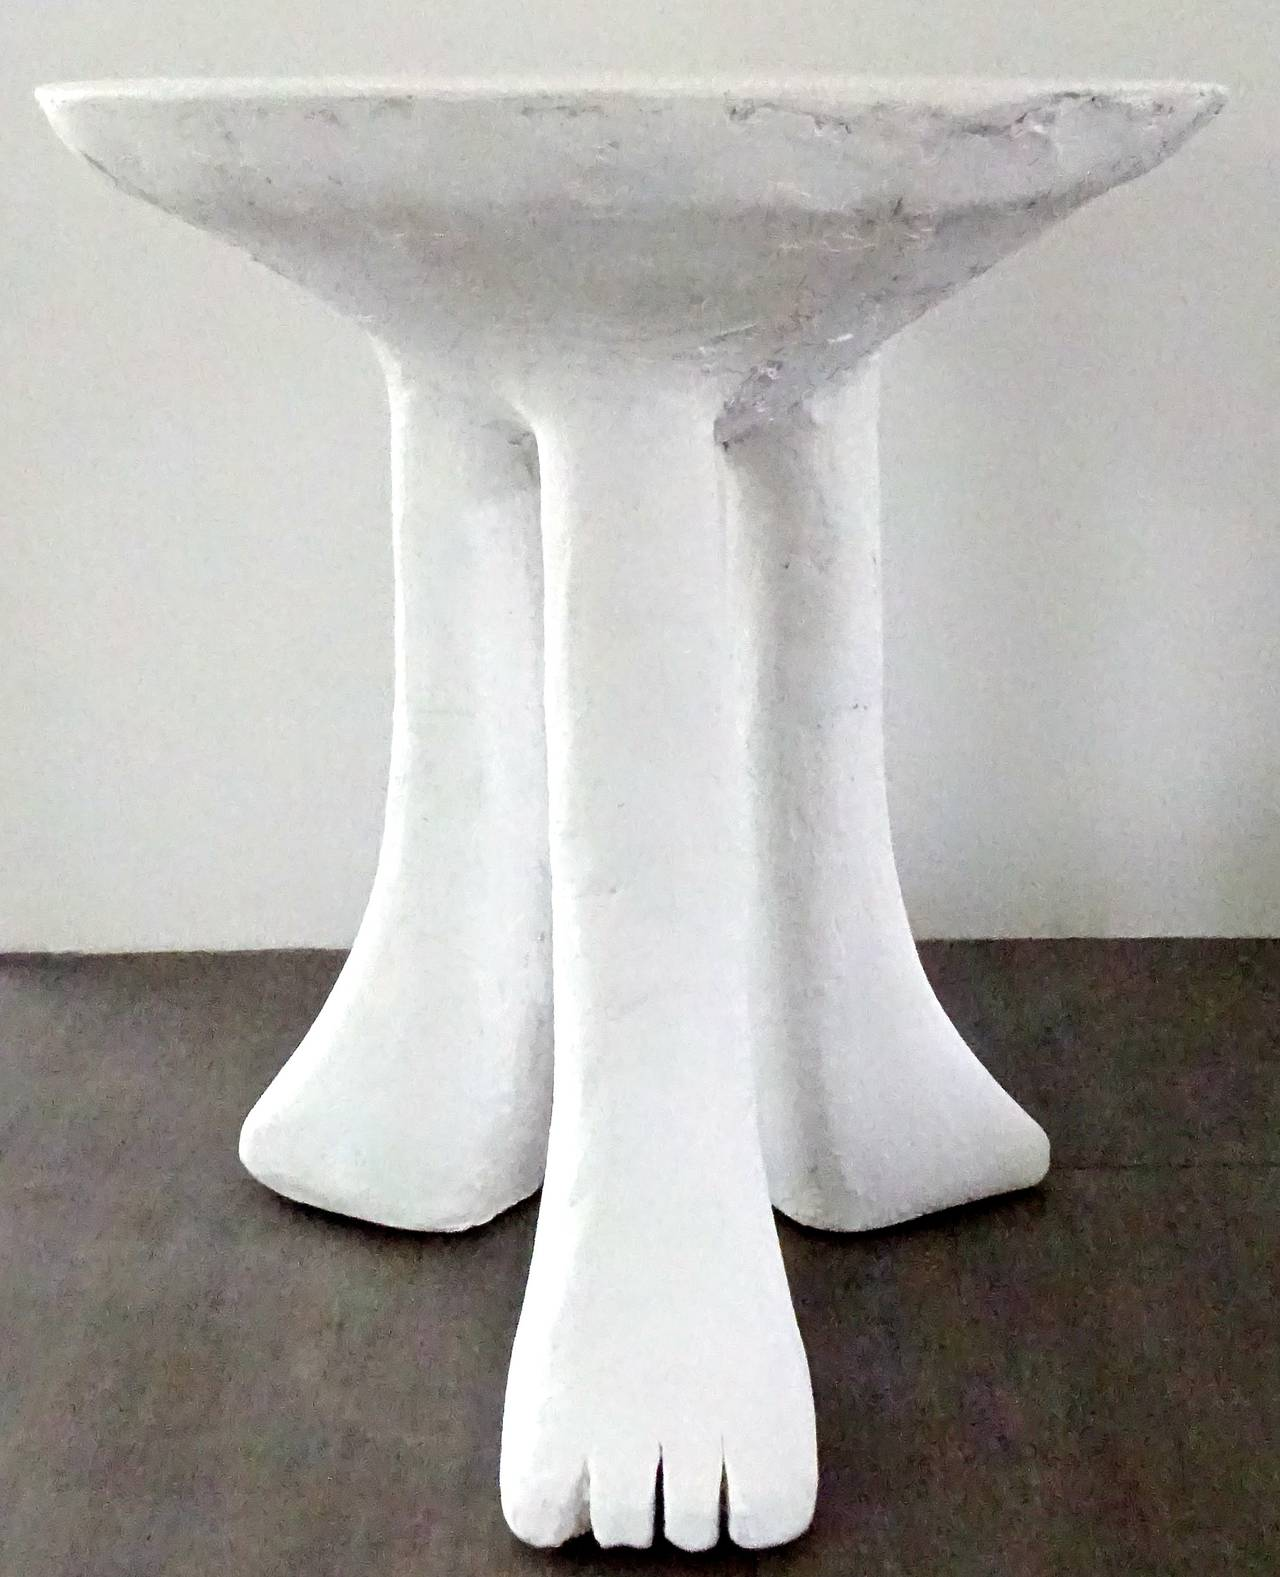 Iconic 1970s John Dickinson Plaster Africa End Table For Sale at